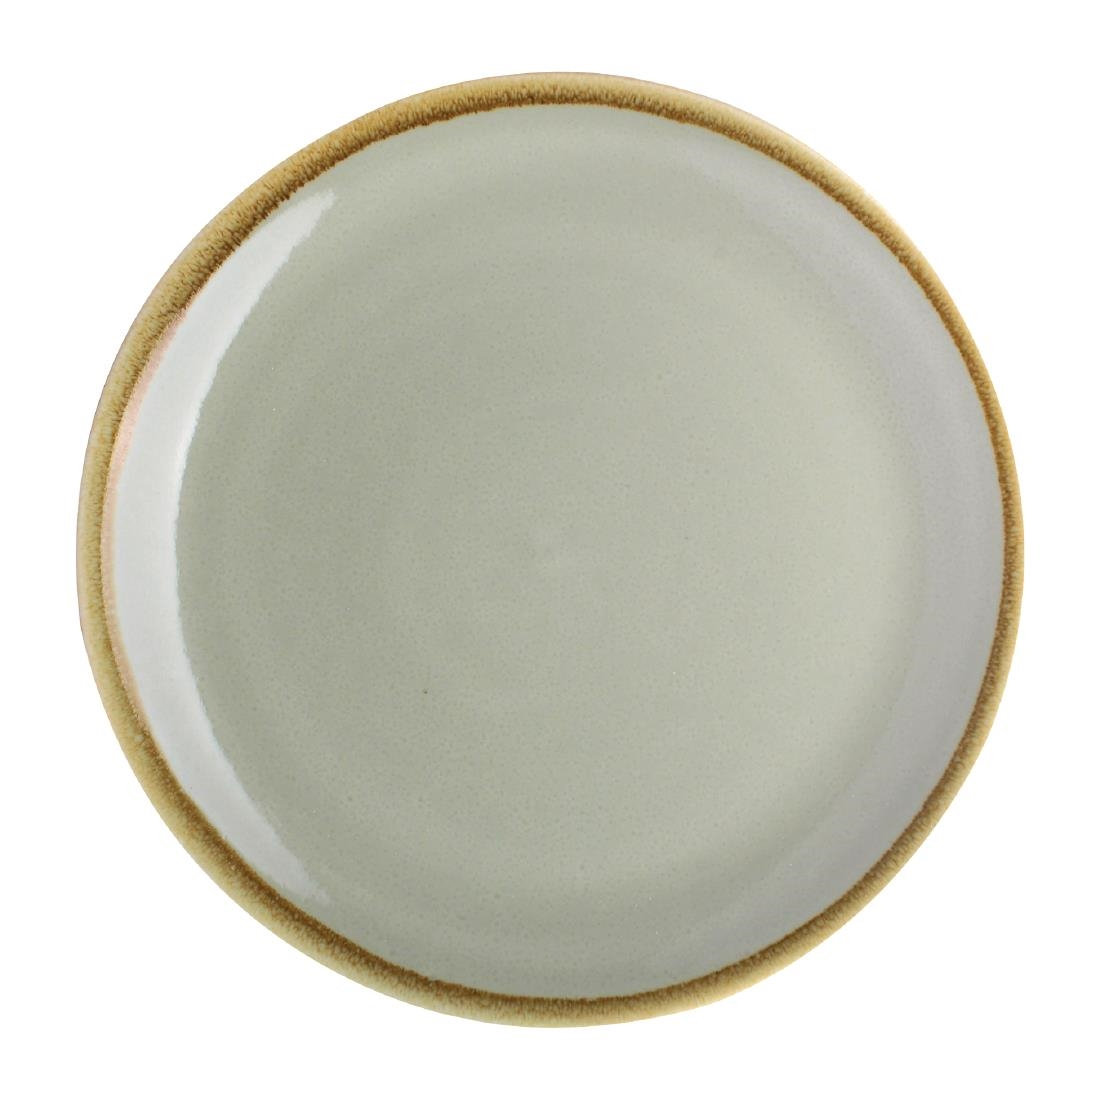 Assiette plate ronde couleur mousse Kiln Olympia 230mm lot de 6